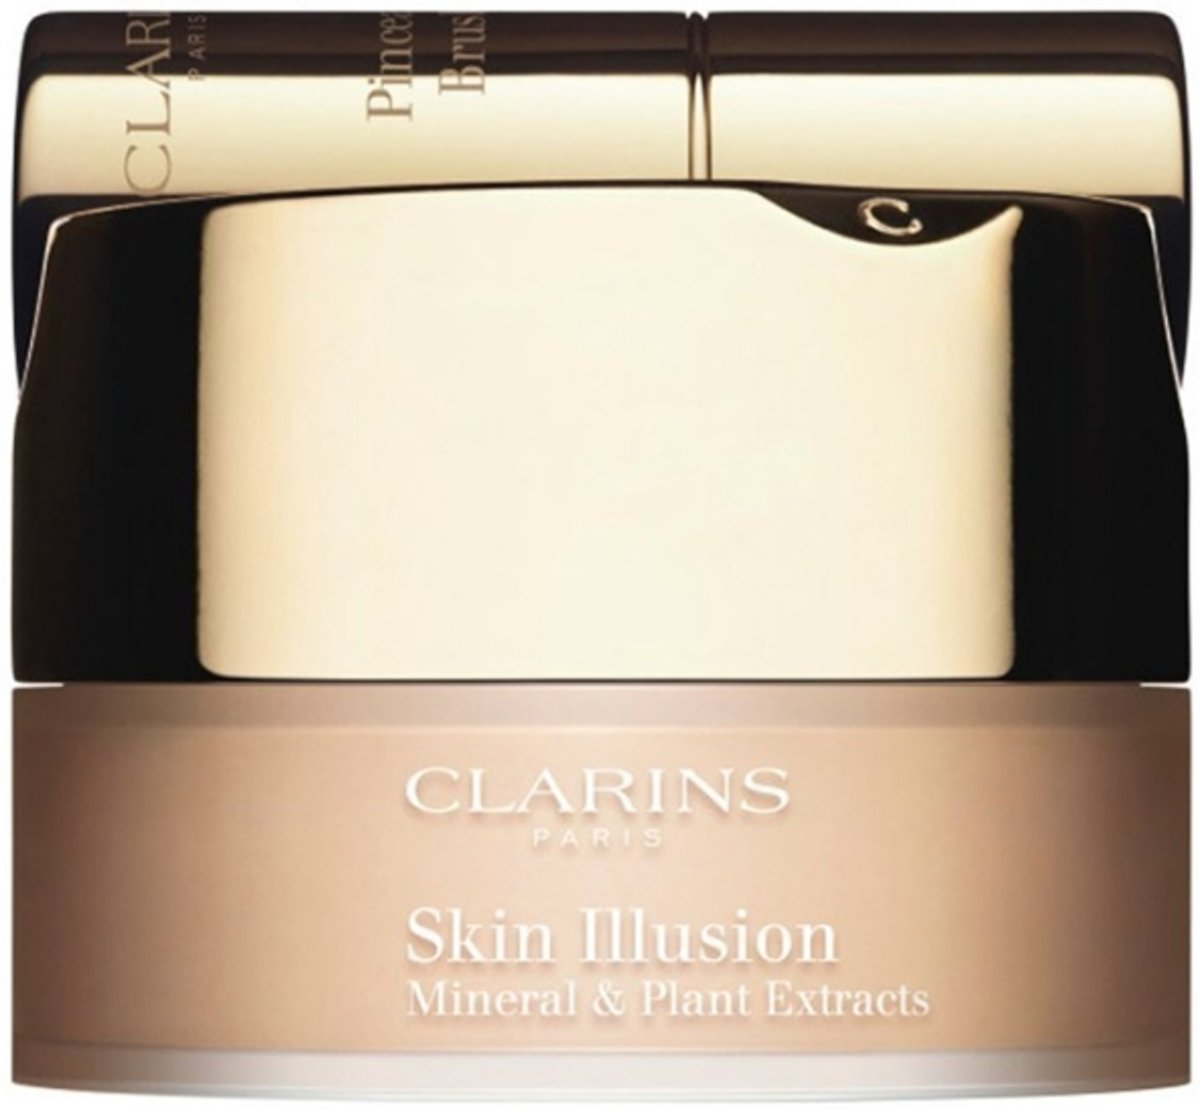 Clarins Skin Illusion Loose Powder Foundation - nr 109 - Foundation